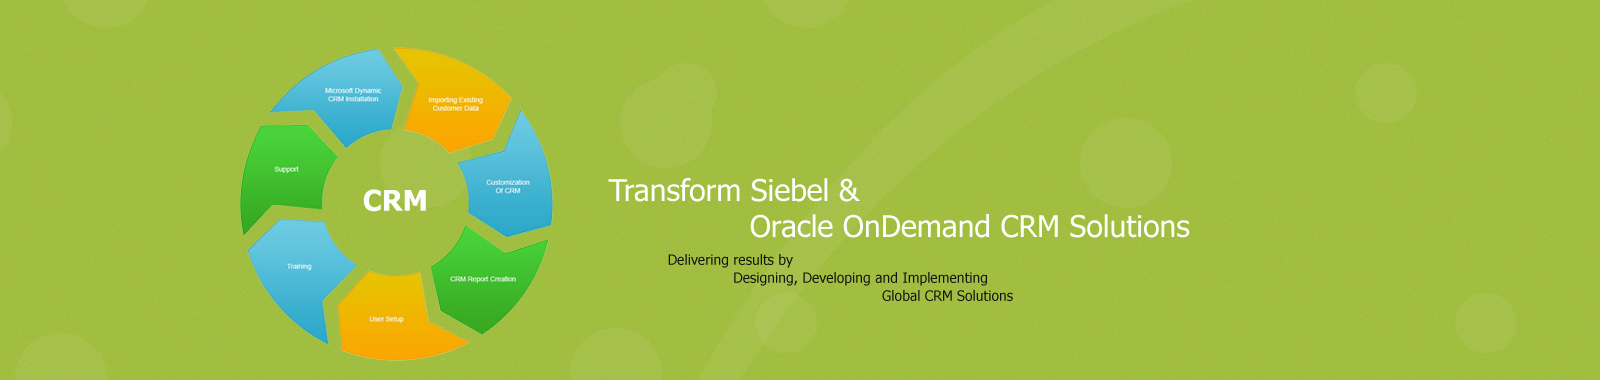 Transform Siebel